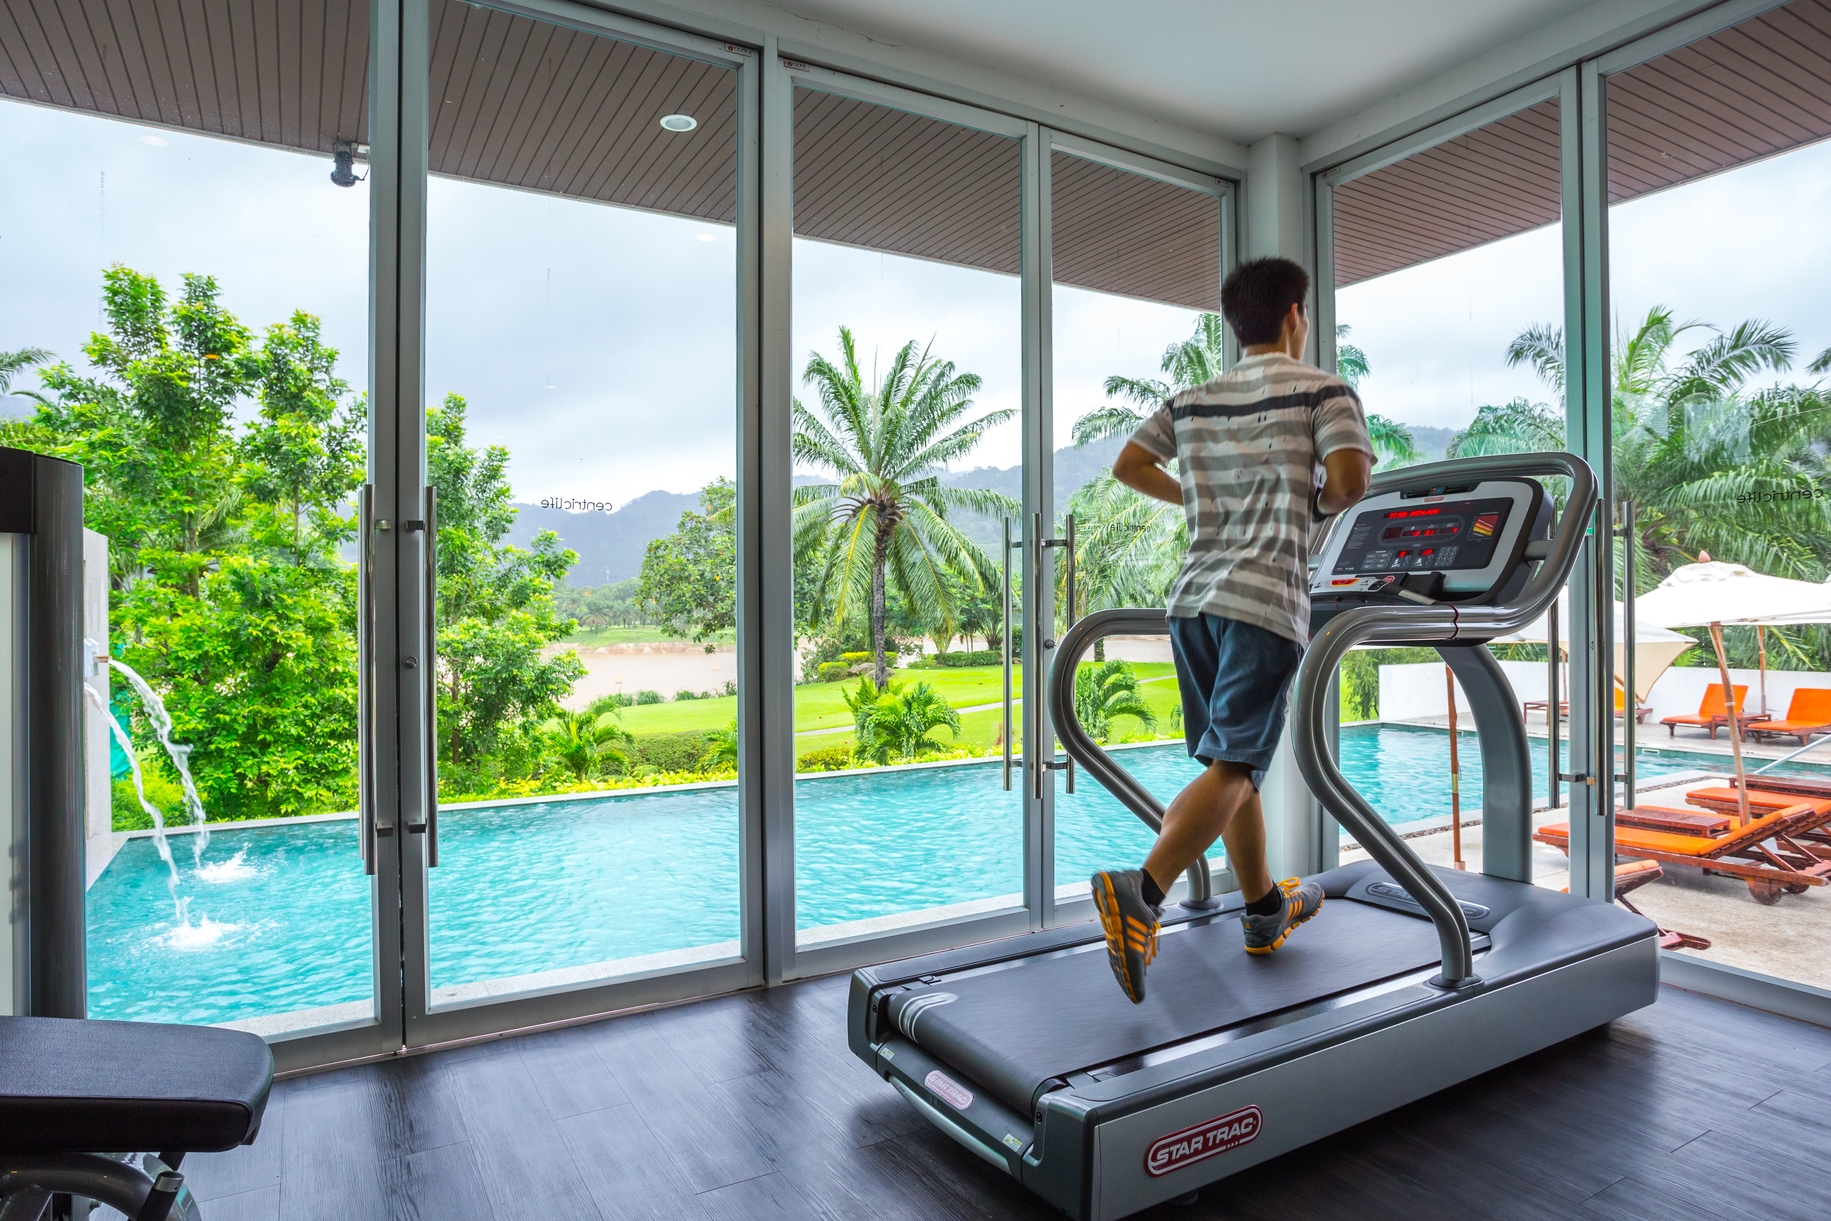 Tinidee Golf Resort@Phuket - Fitness